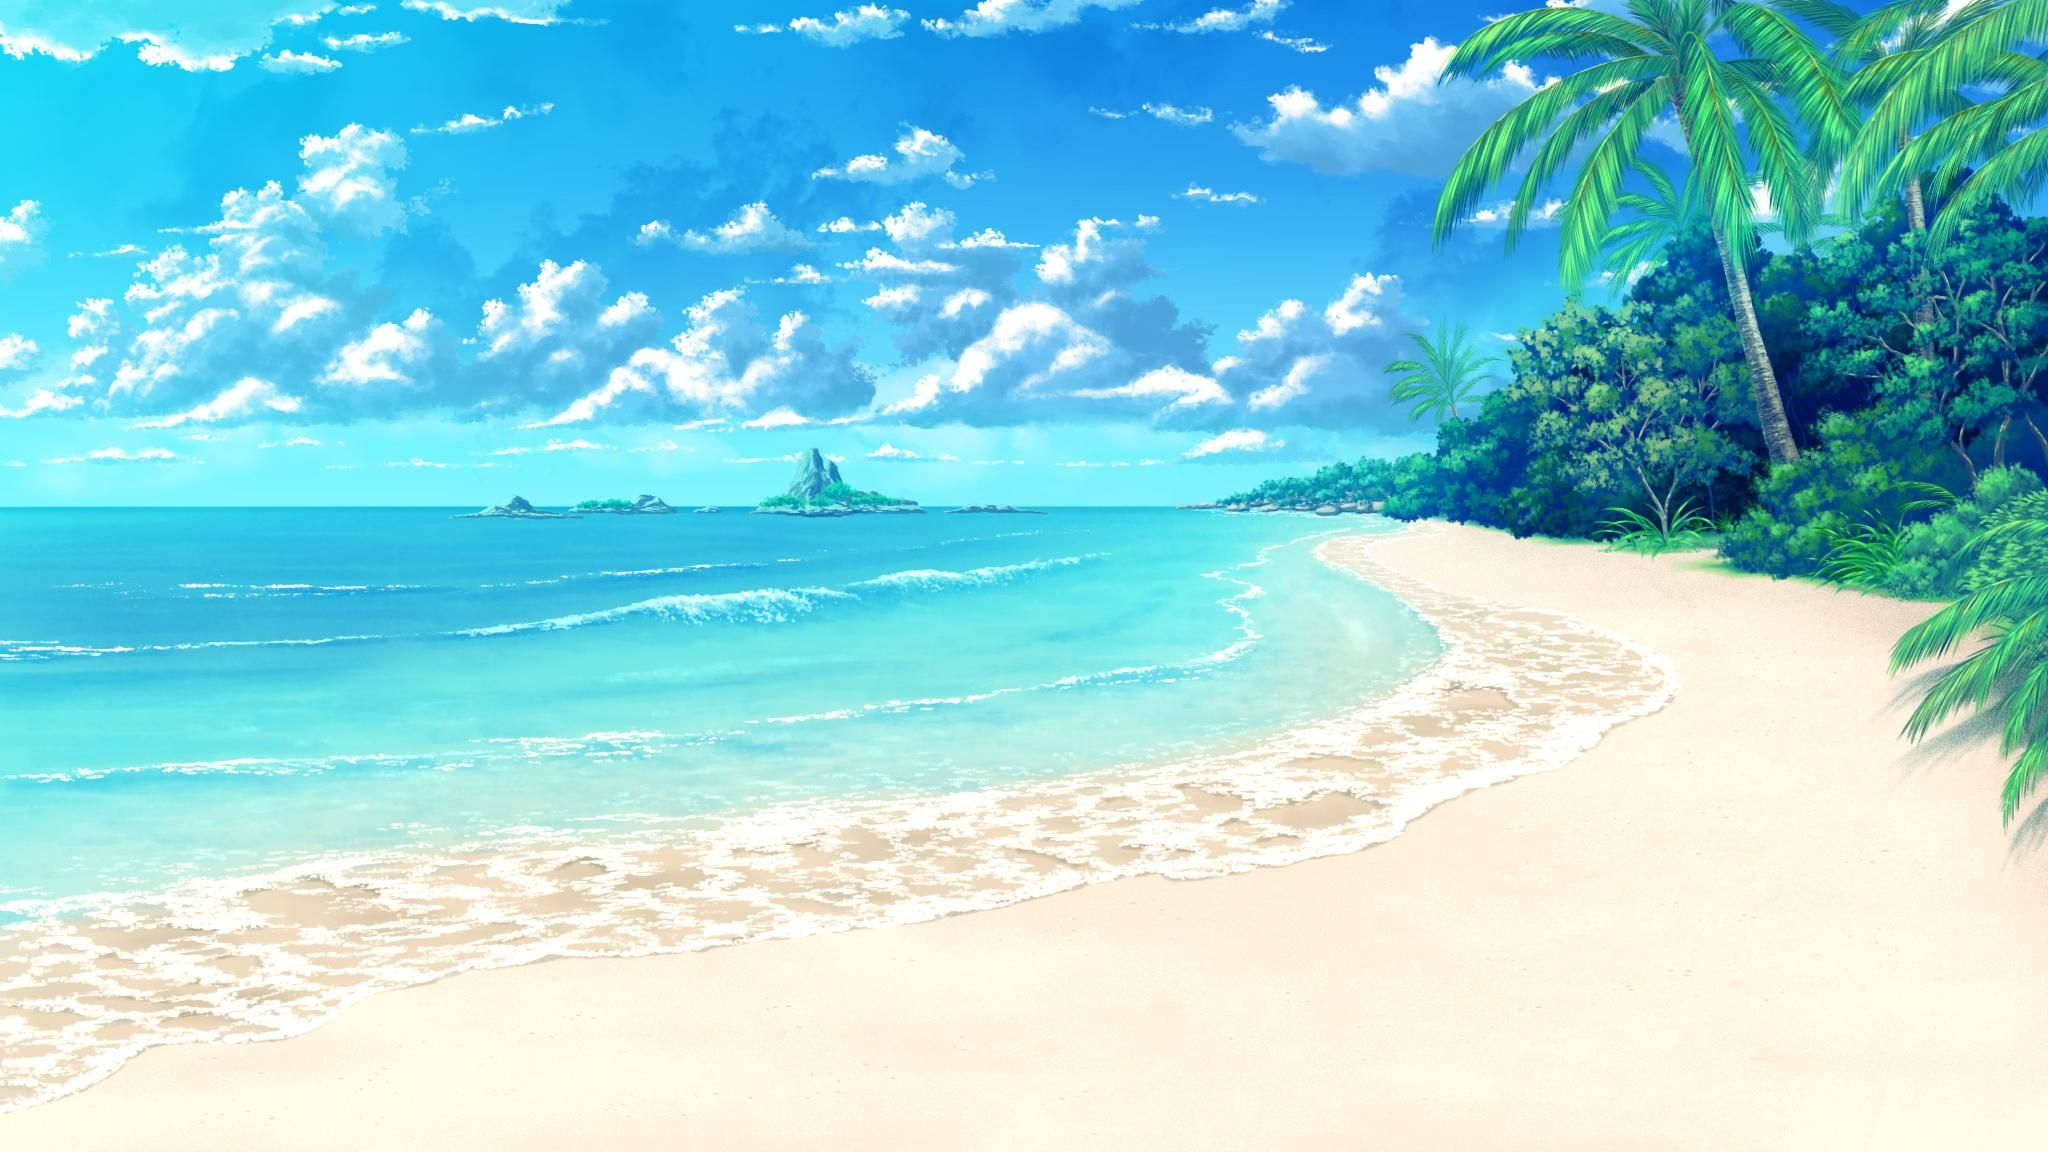 Anime Beach Wallpapers Top Free Anime Beach Backgrounds